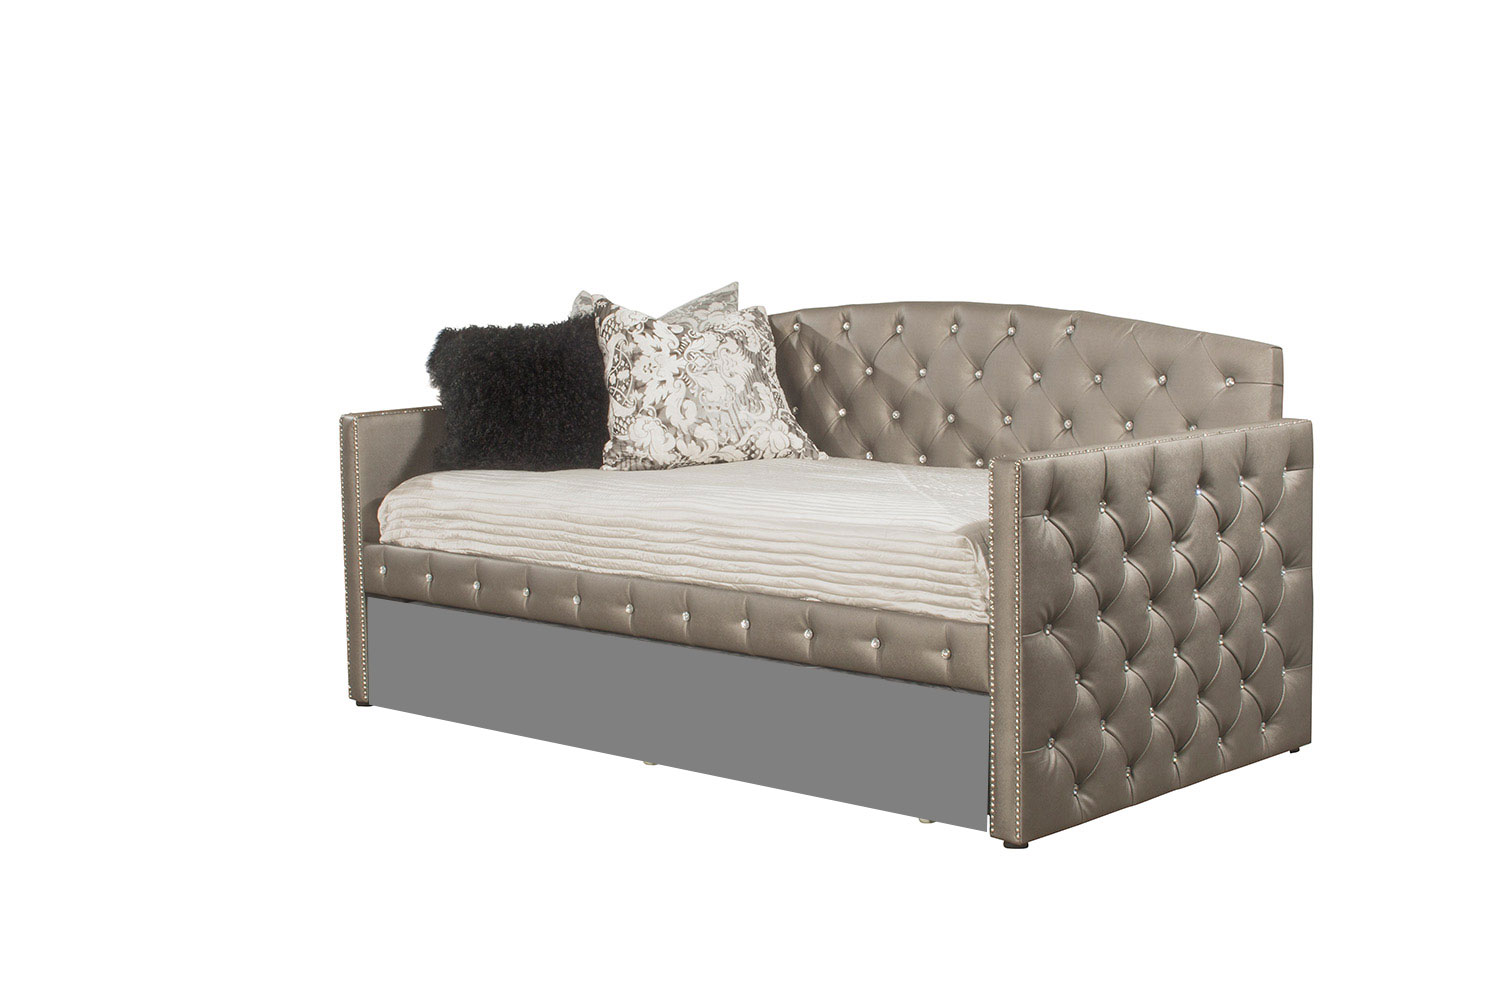 Hillsdale Memphis Daybed - Diva Pewter Faux Leather